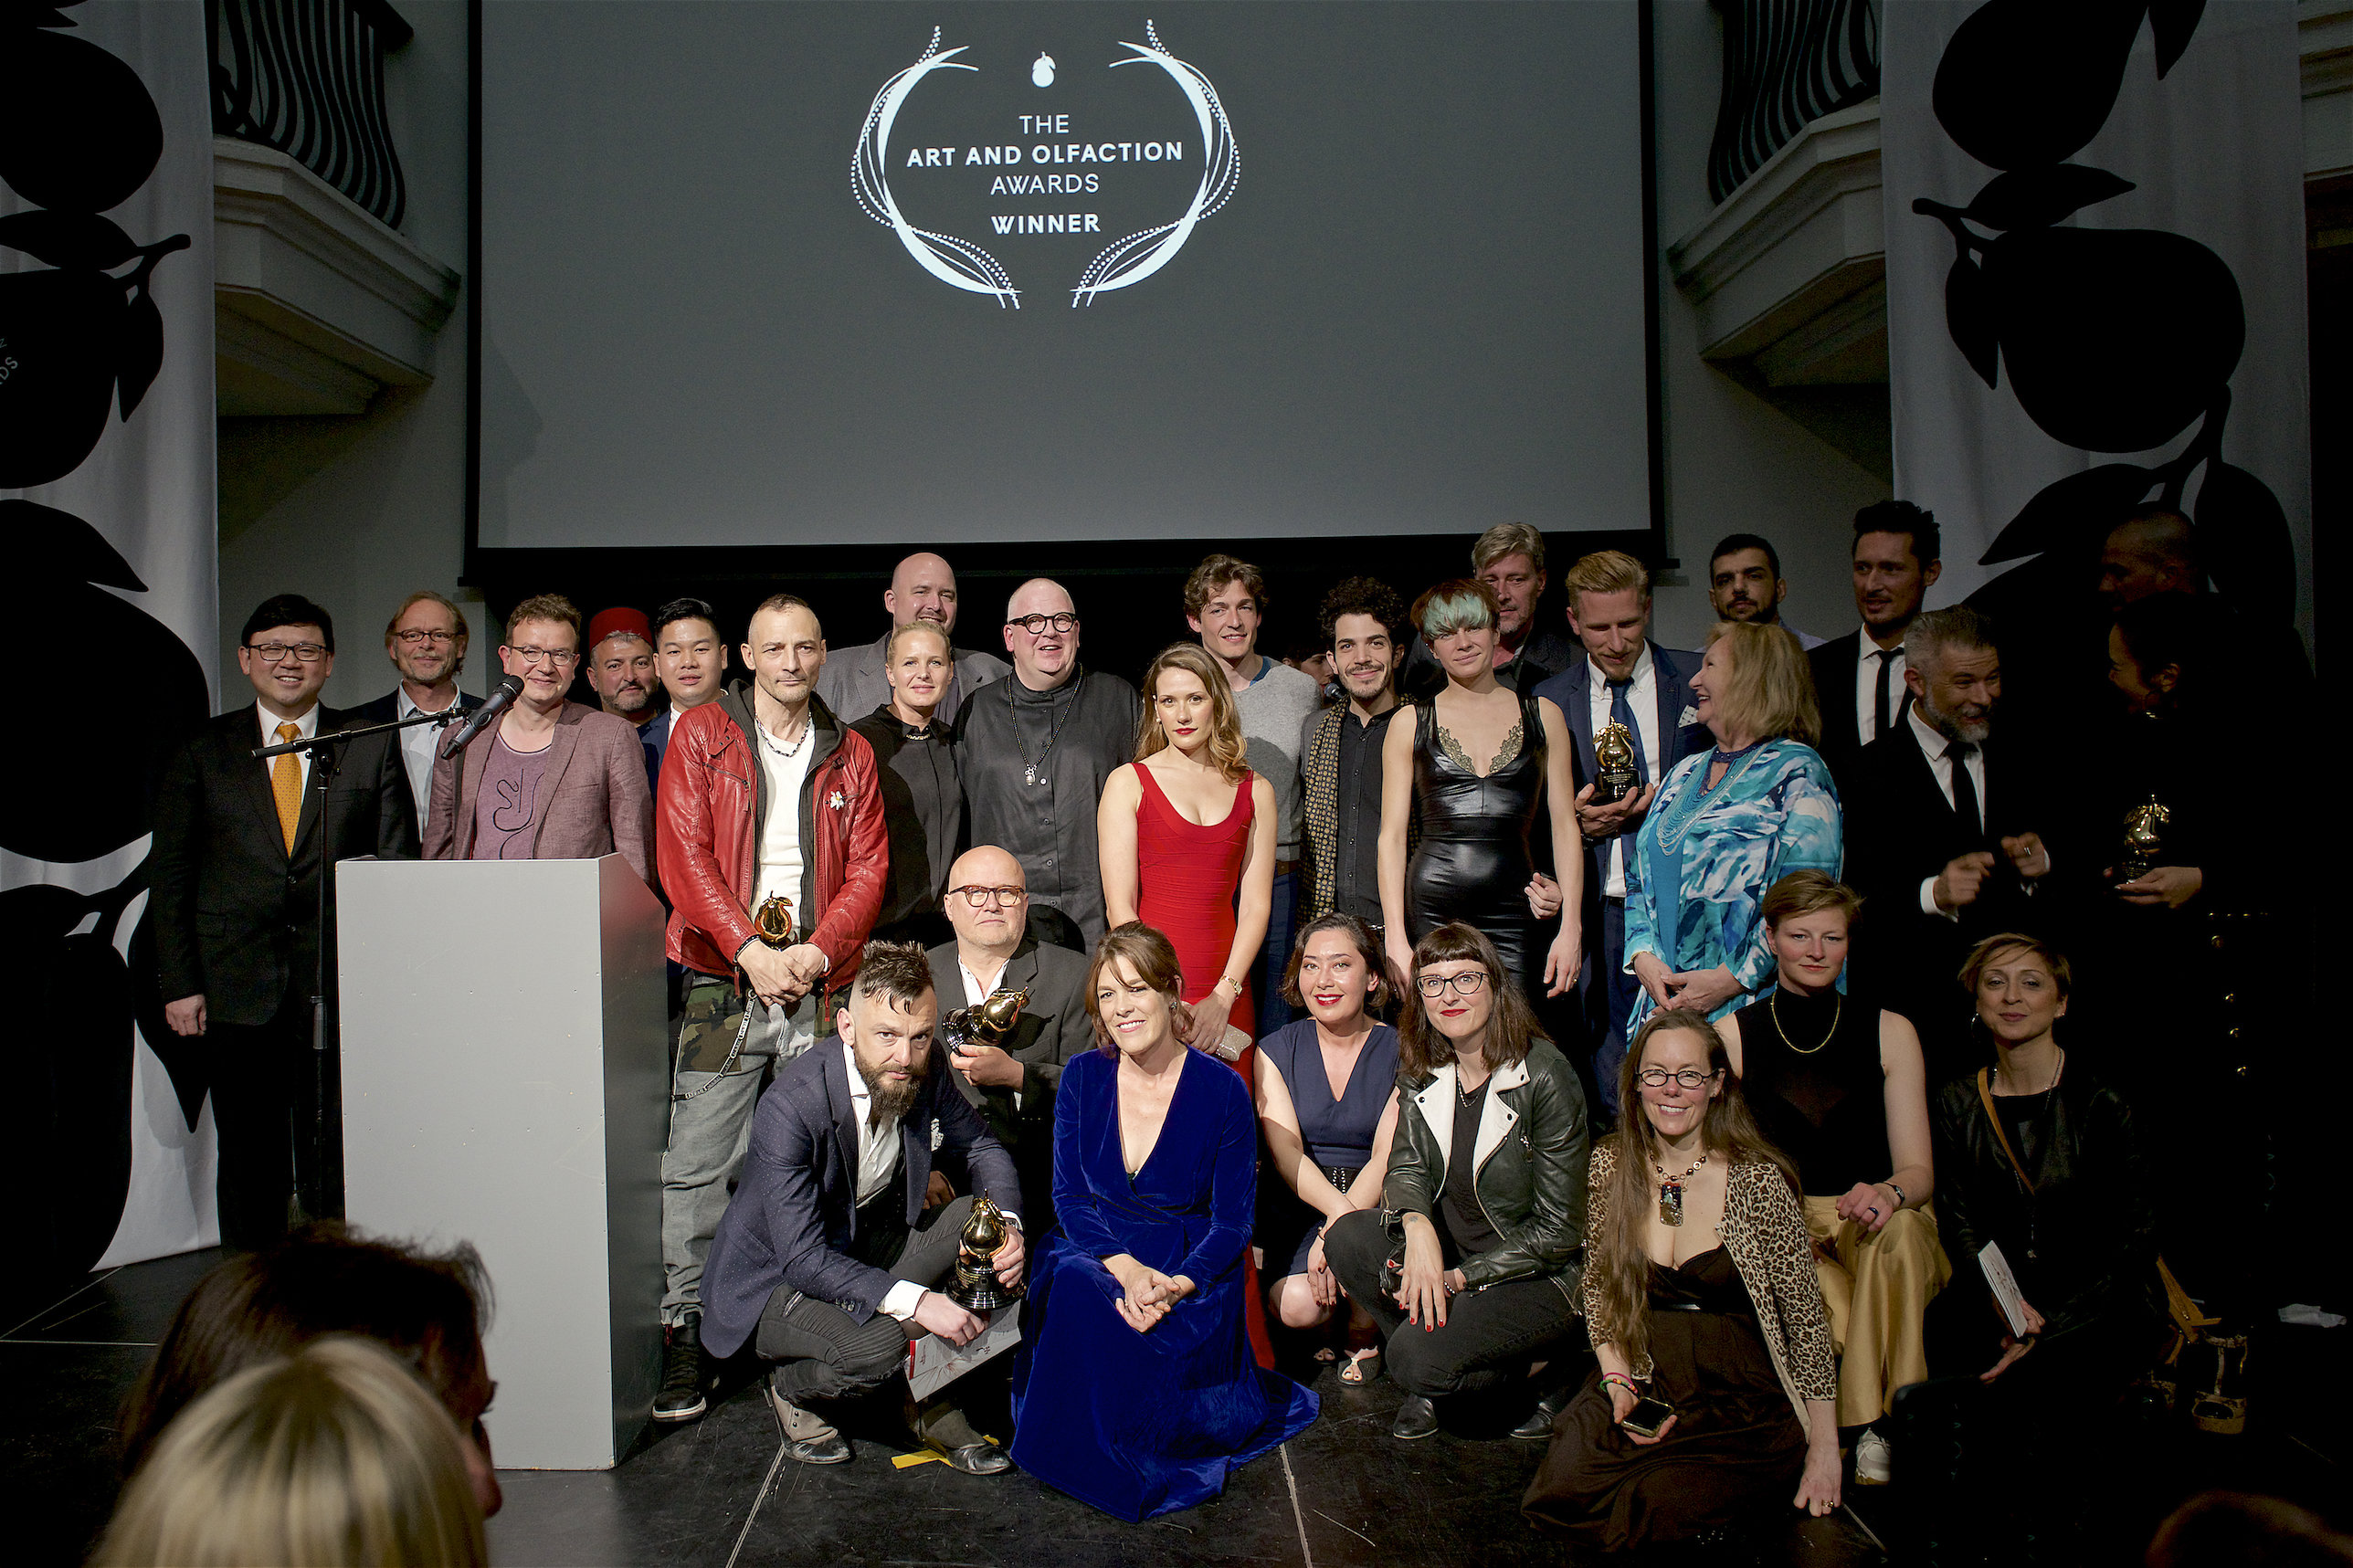 Winners, finalists, and judges at The Art and Olfaction Awards in Berlin.